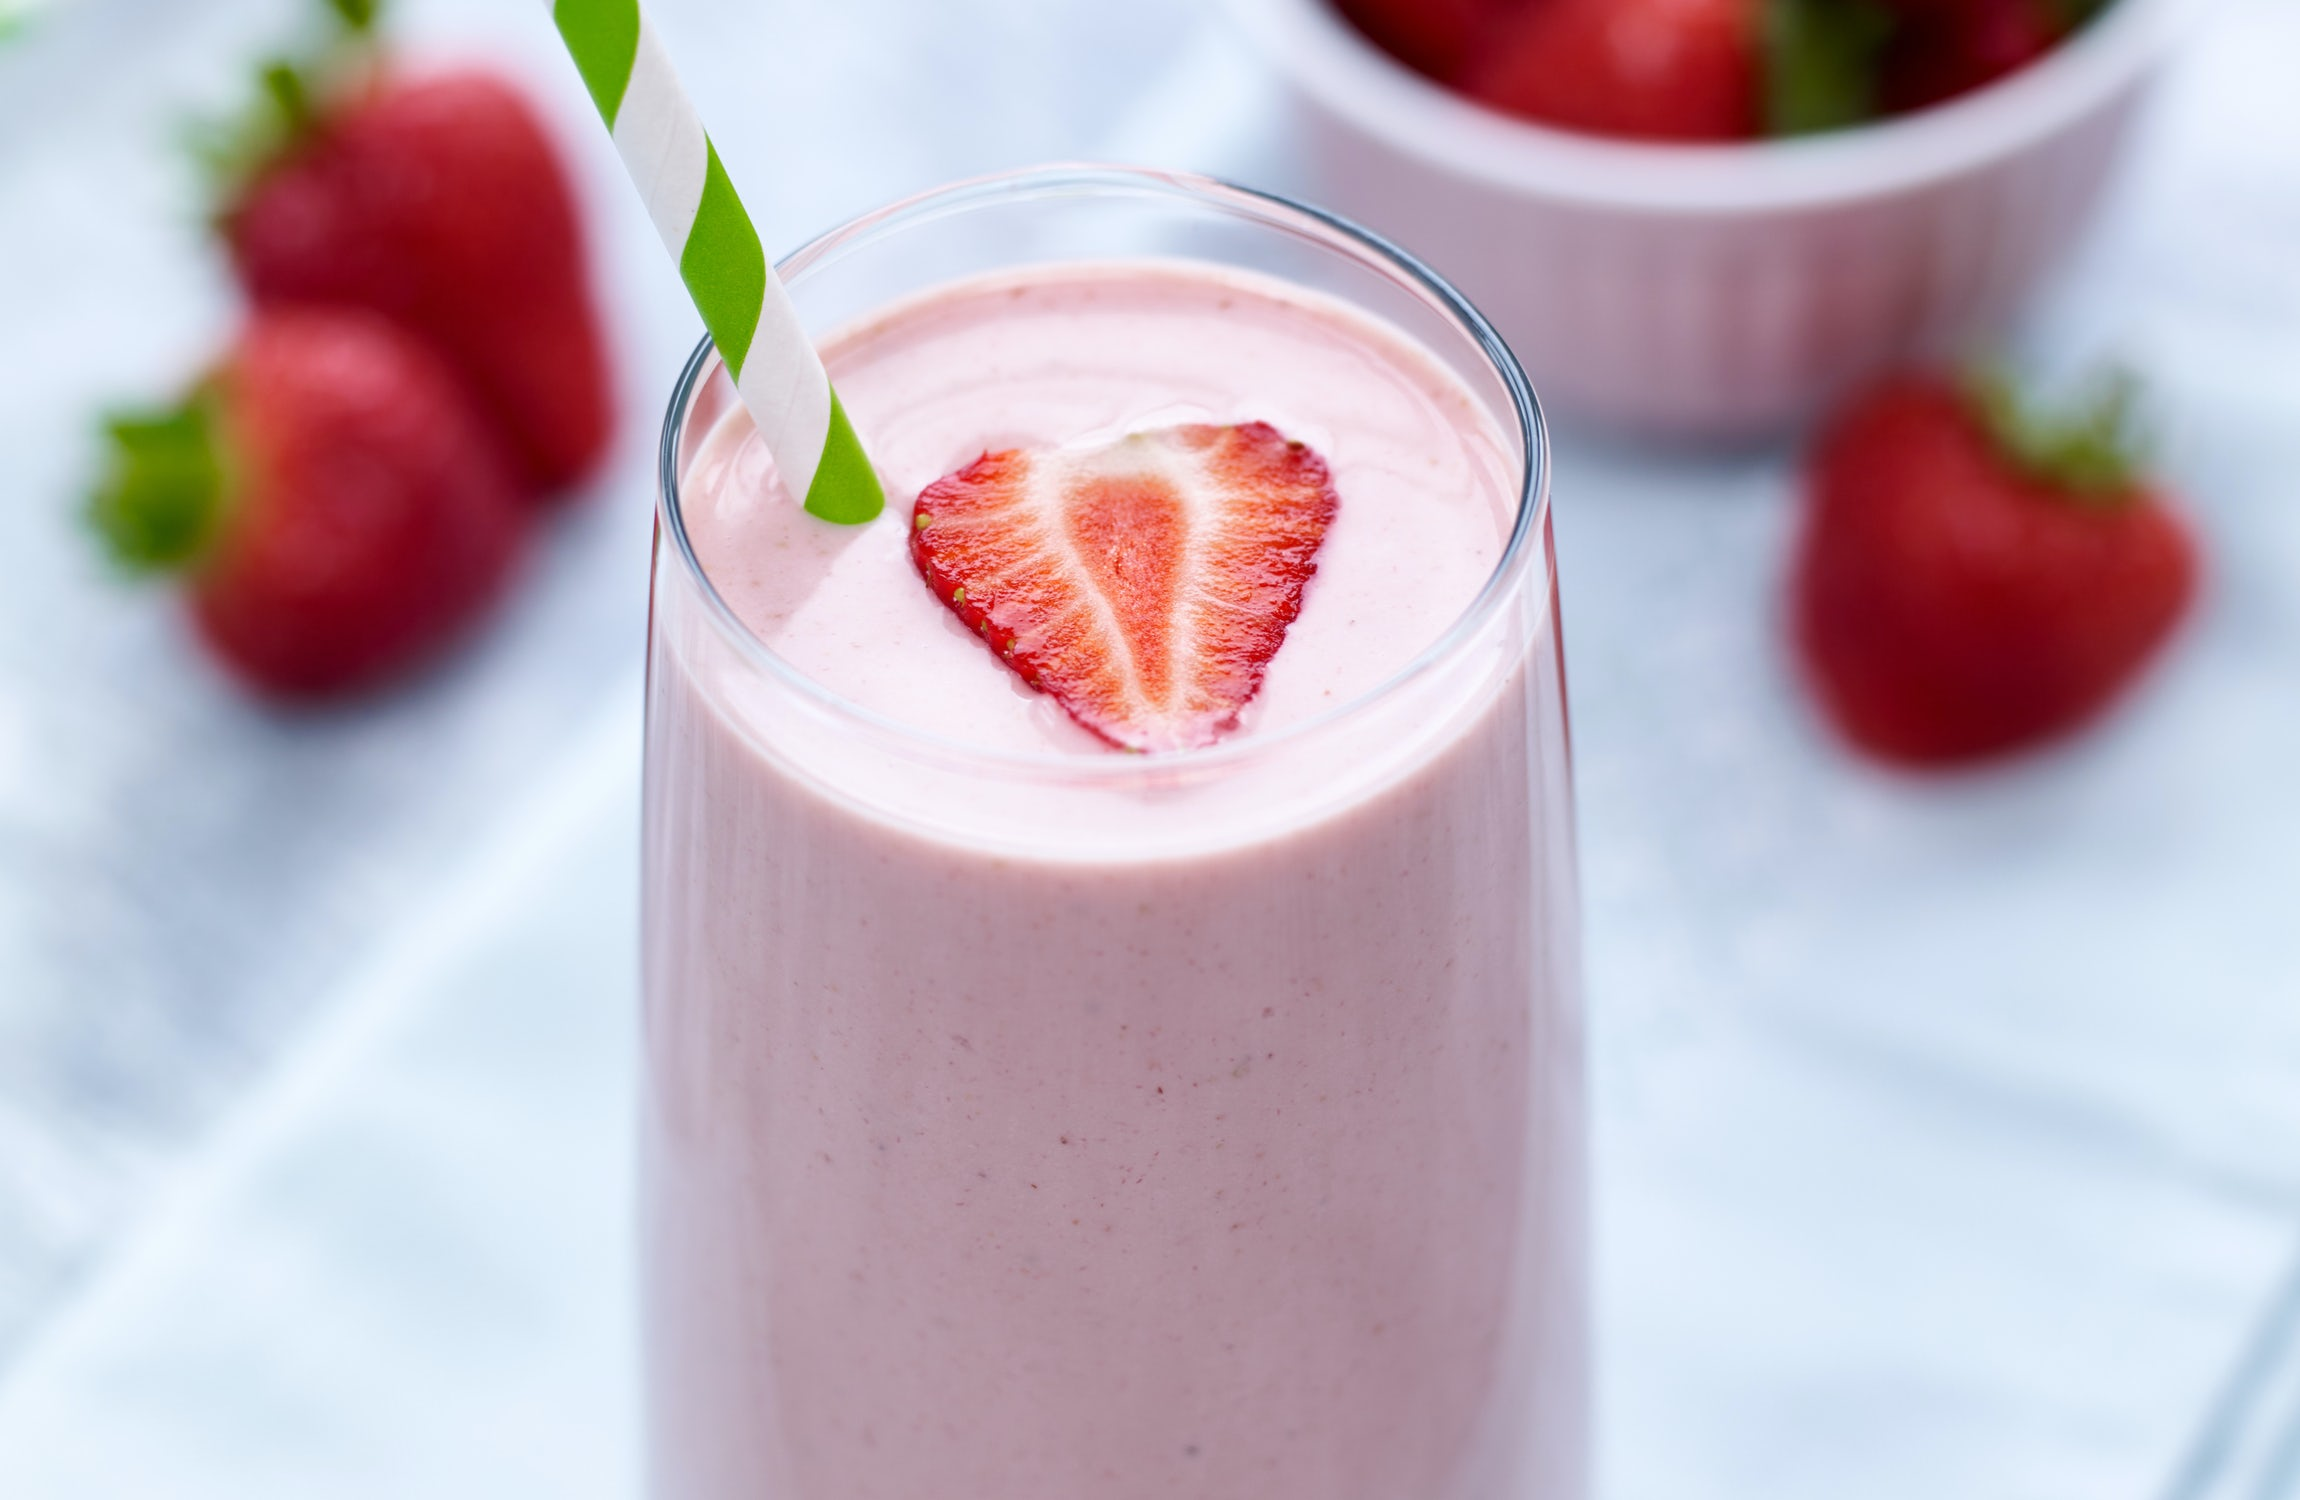 BerryWorld | Strawberry, Banana, Cashew Butter & Yogurt Smoothie…